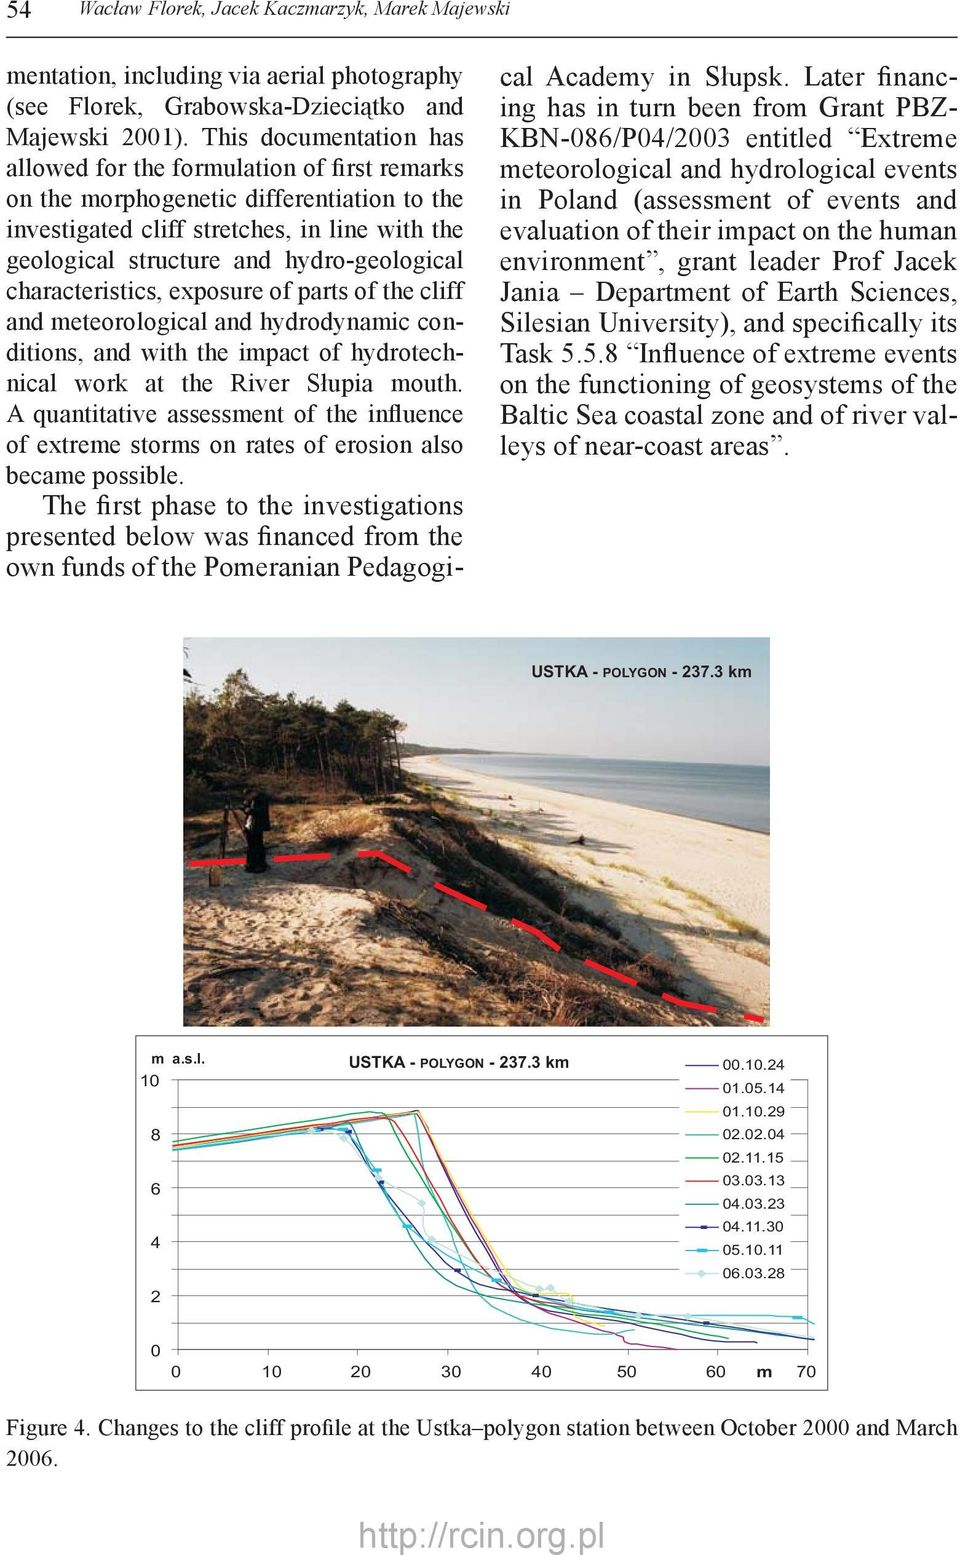 hydro-geological characteristics, exposure of parts of the cliff and meteorological and hydrodynamic conditions, and with the impact of hydrotechnical work at the River Słupia mouth.